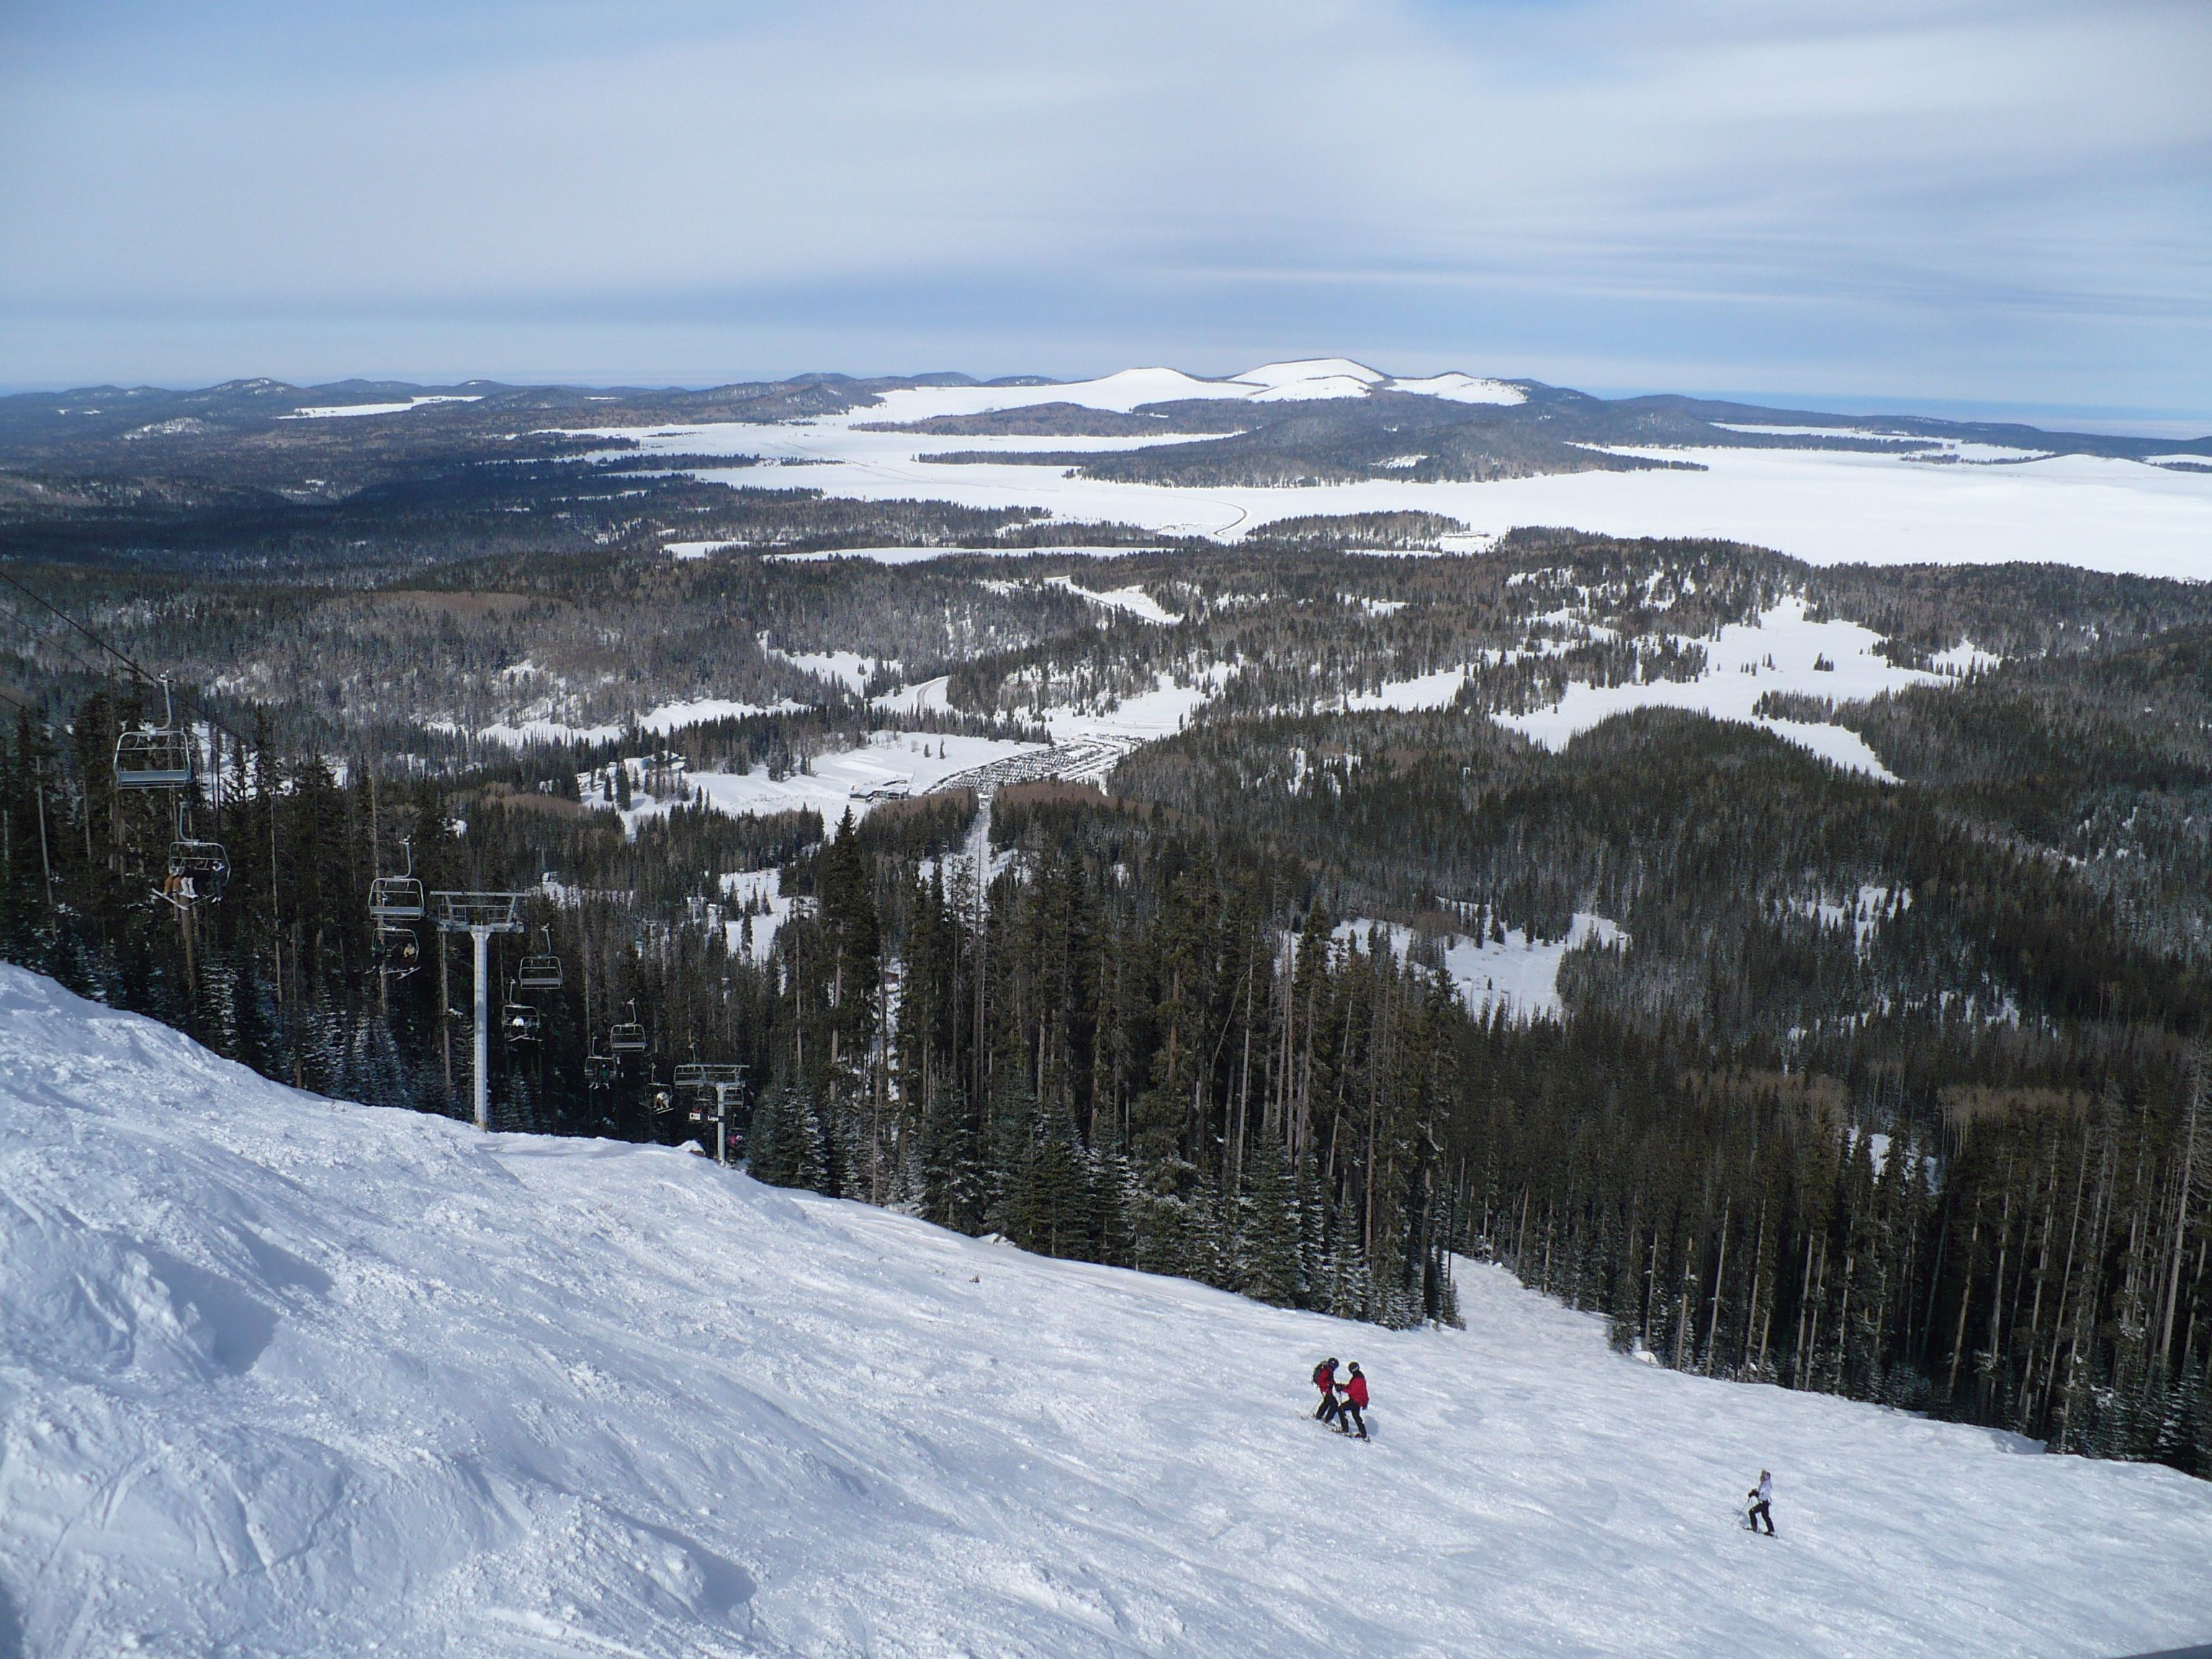 sunrise ski resort, in white mountians on apache indian reservation